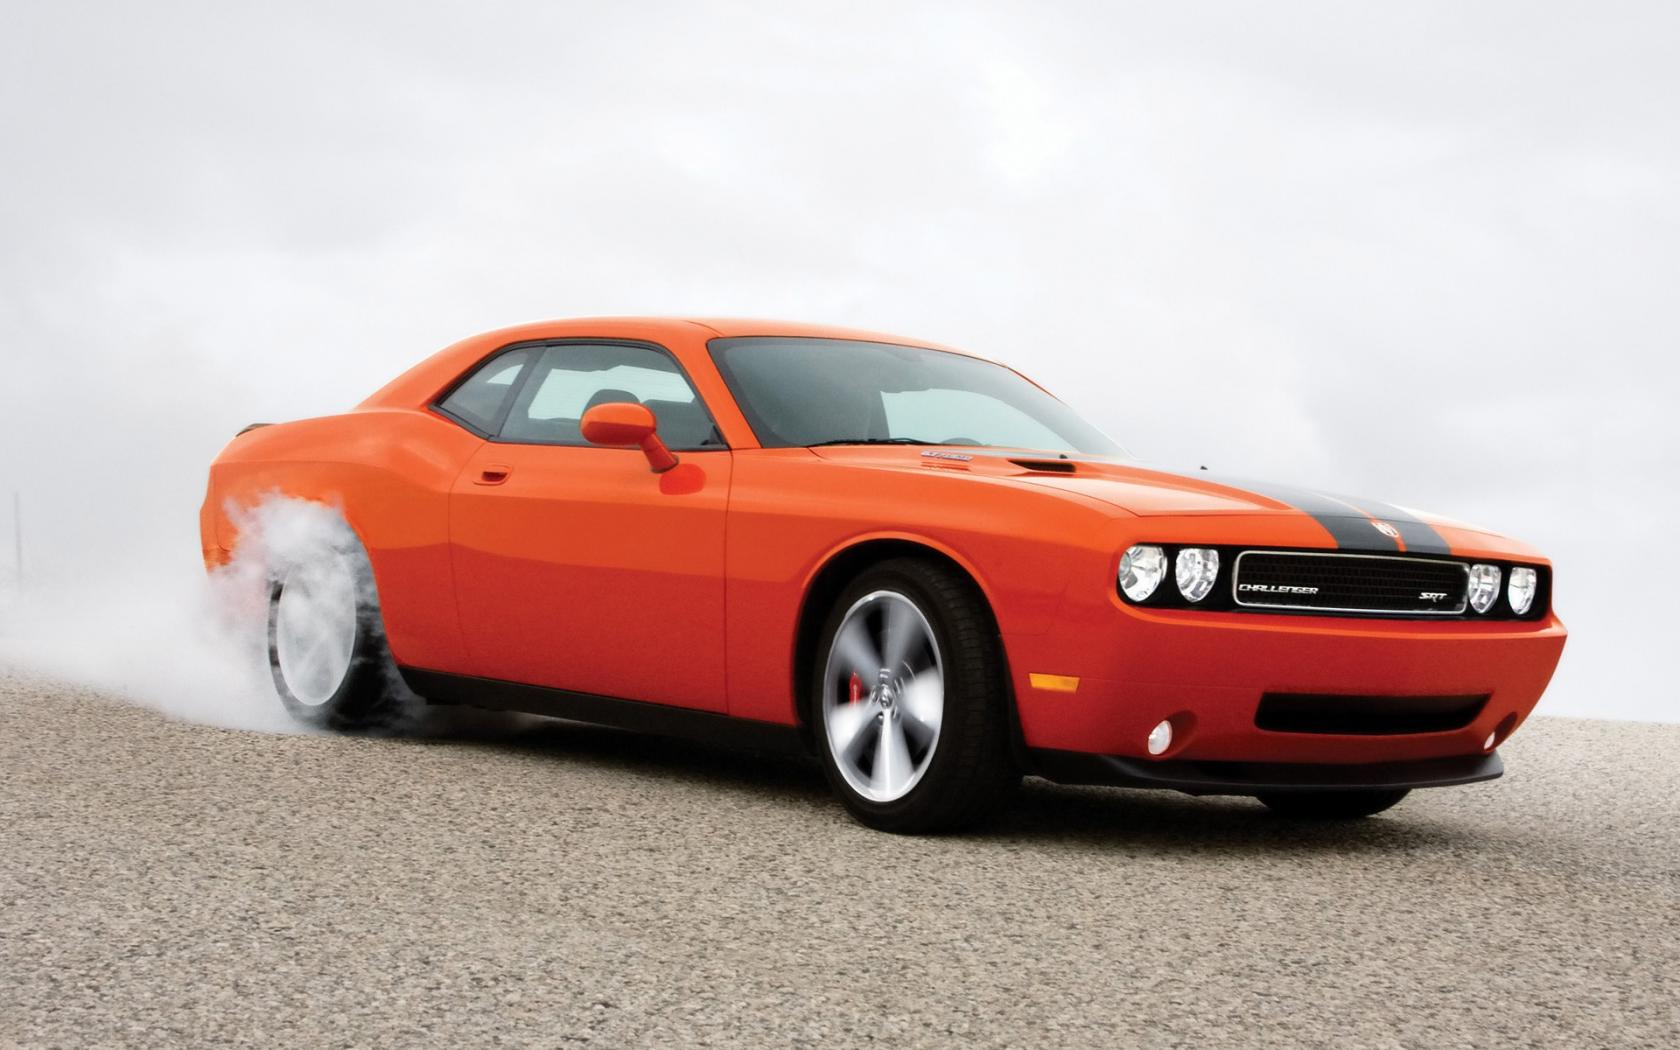 2008 Dodge Challenger Srt8 Burnout Side Angle 1680x1050